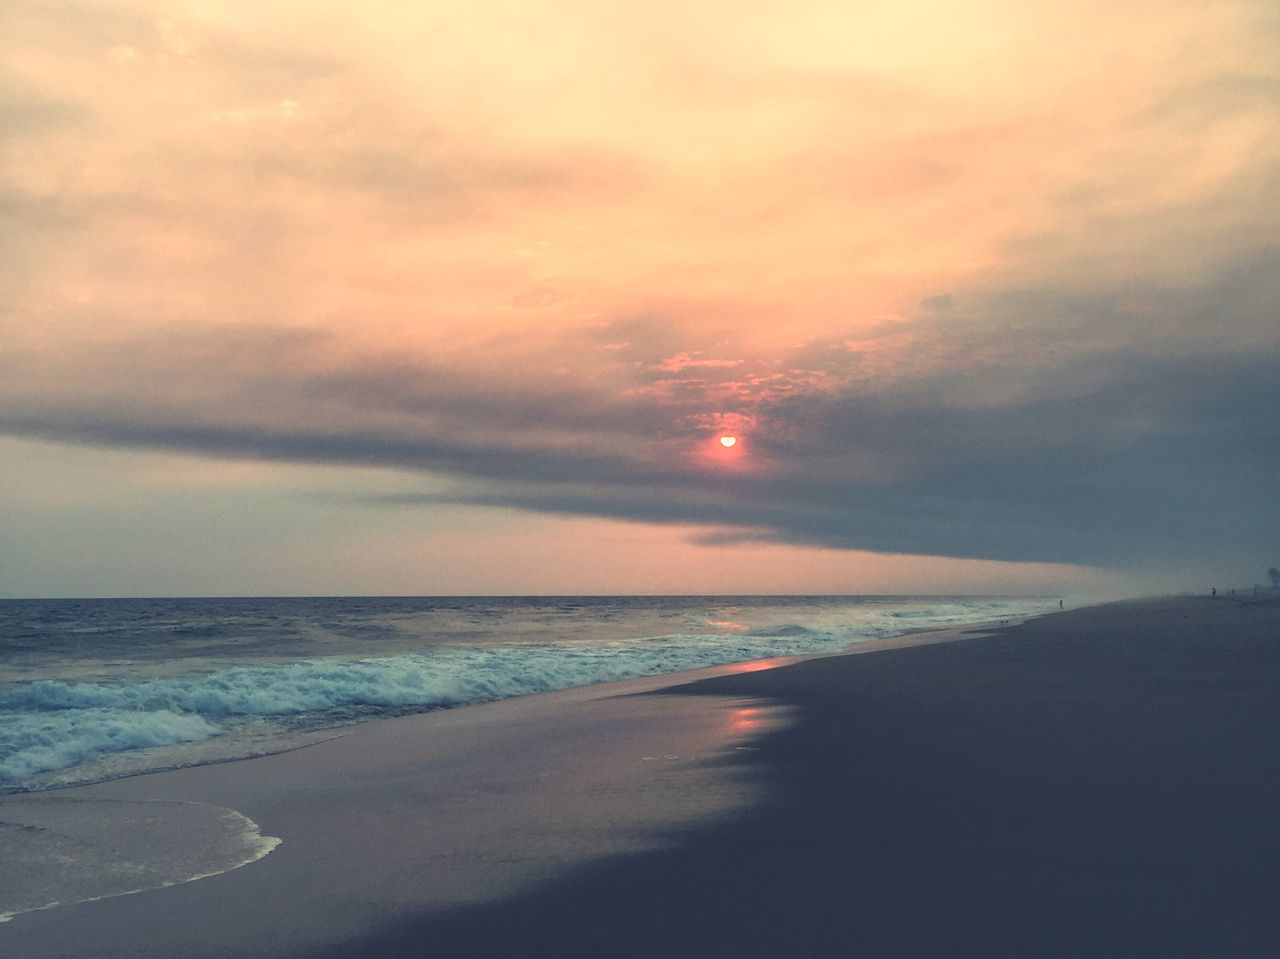 sea, horizon over water, scenics, water, beauty in nature, nature, beach, tranquil scene, sky, sunset, tranquility, idyllic, cloud - sky, no people, outdoors, wave, vacations, travel destinations, day